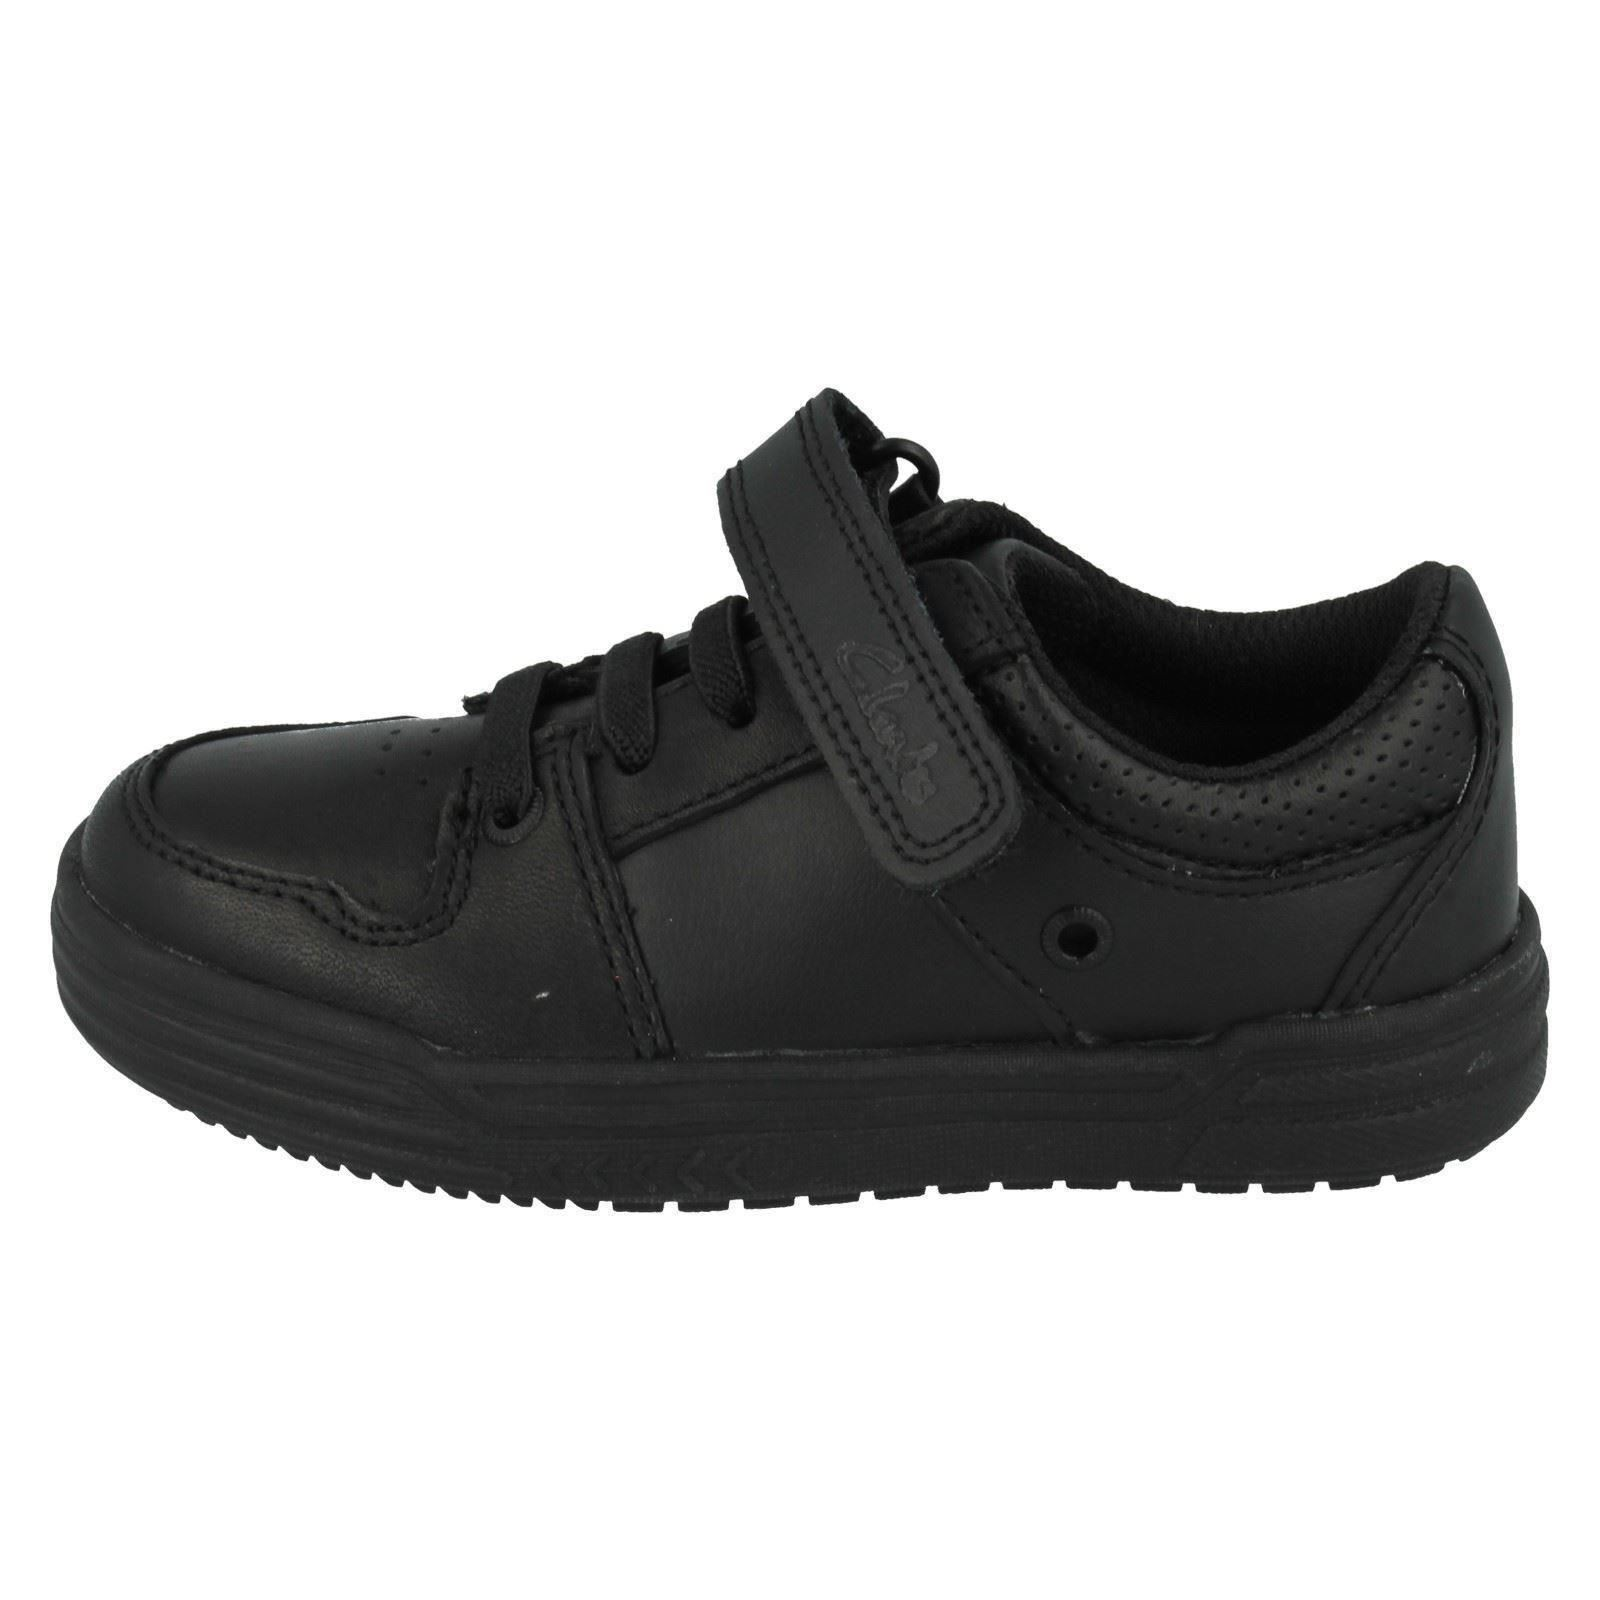 Boys Clarks Shoes The Style - Chad Slide